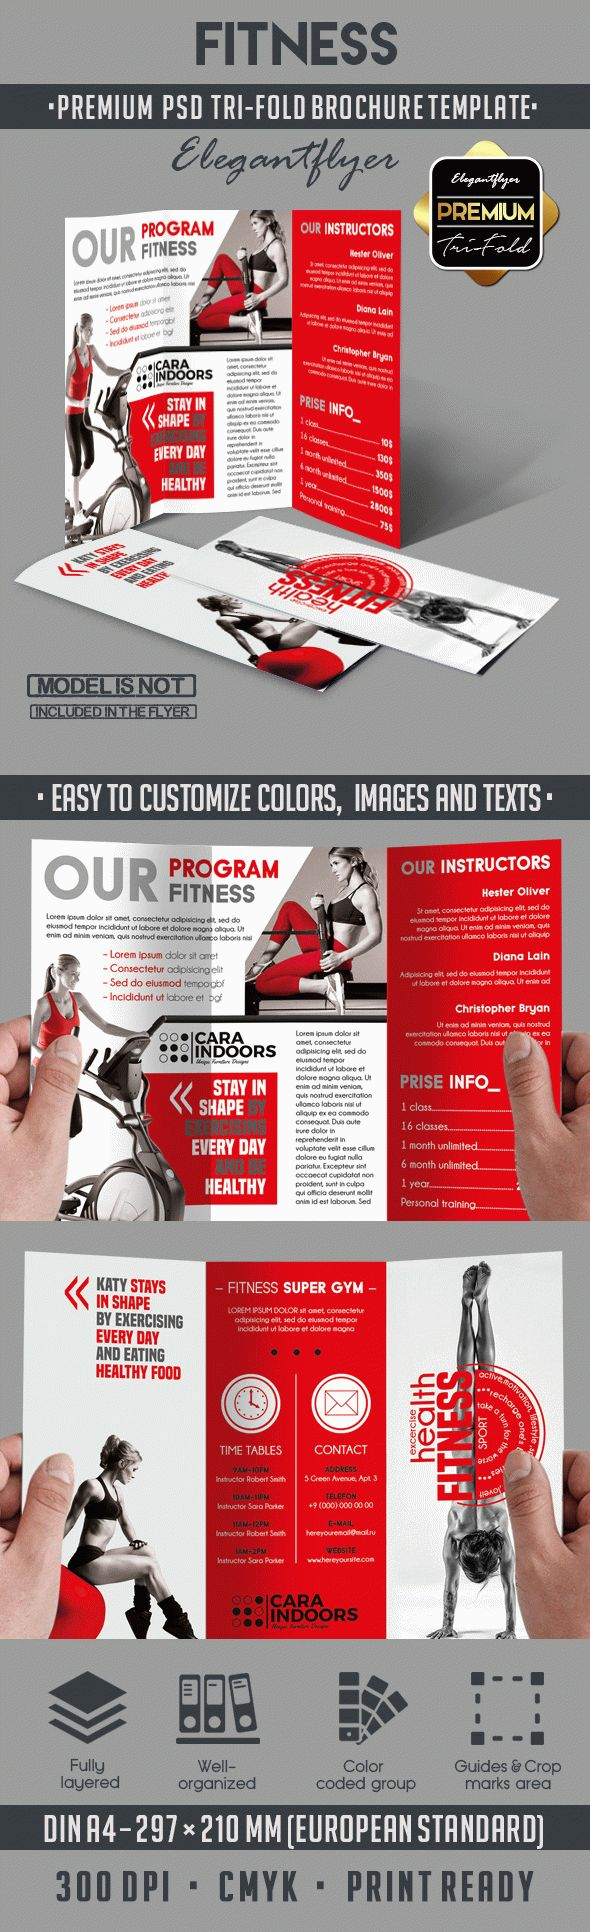 Fitness TriFold Brochure PSD Template by ElegantFlyer – Fitness Brochure Template